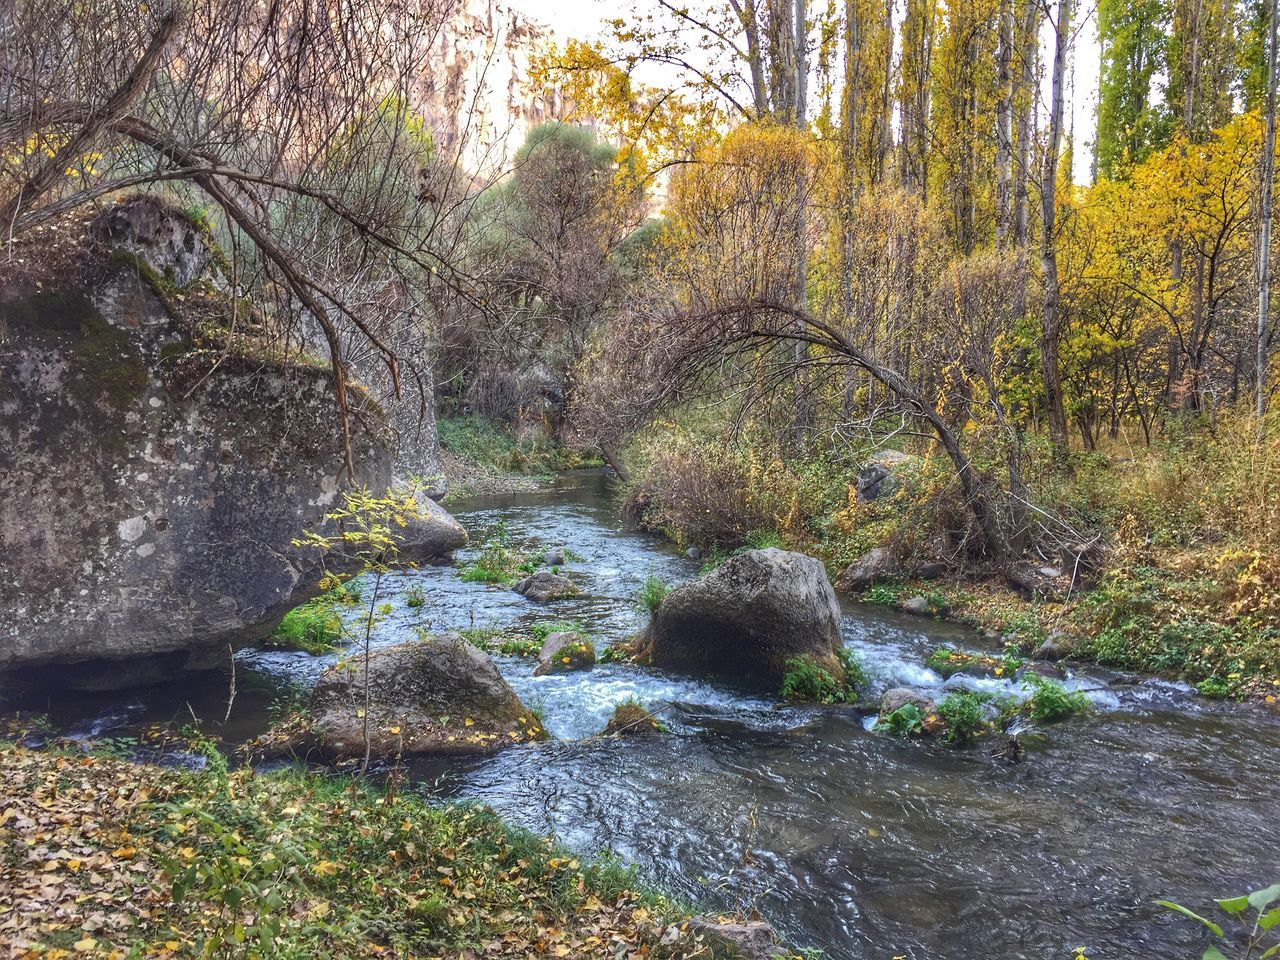 Forest River Nature Tranquility Tree Water No People Beauty In Nature Outdoors Day Tranquil Scene Nature Photography Auntumn IPhoneography IPhone Photography Iphone6plus ıhlara Vadisi